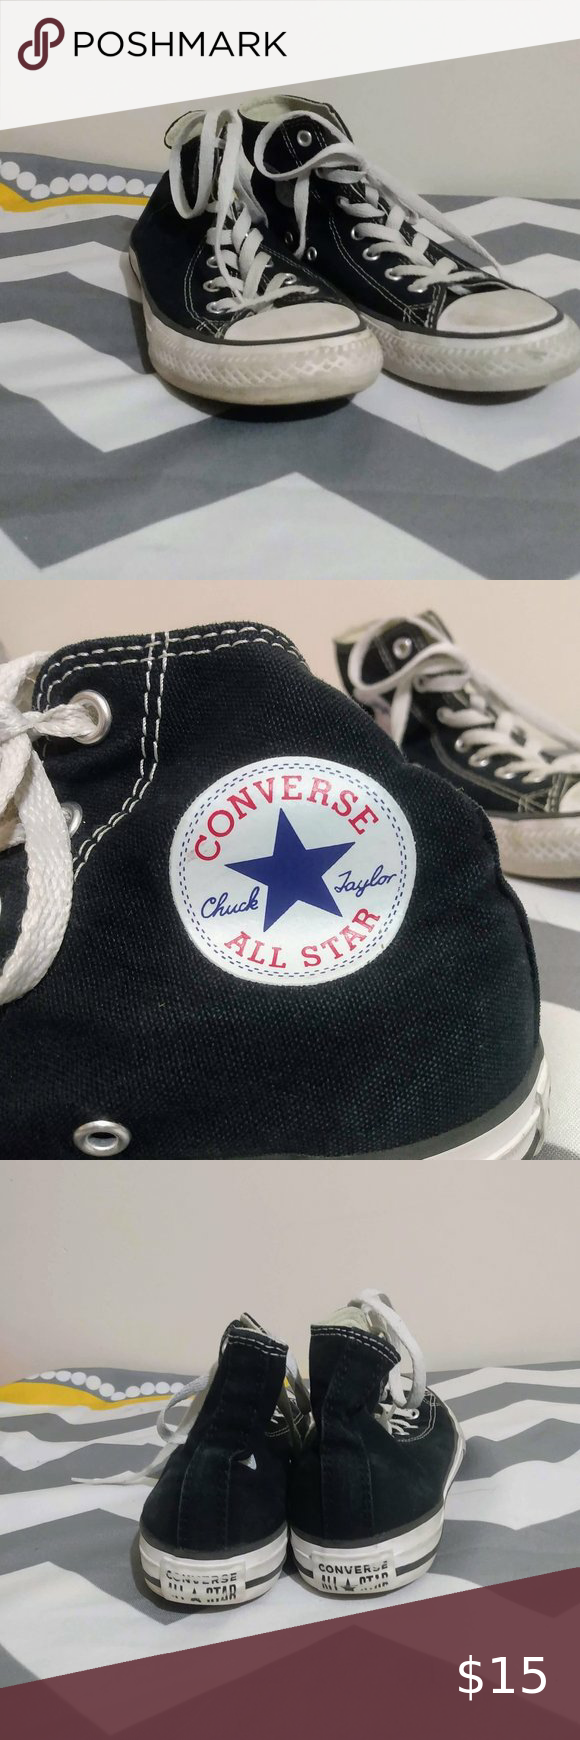 converse high tops youth size 3